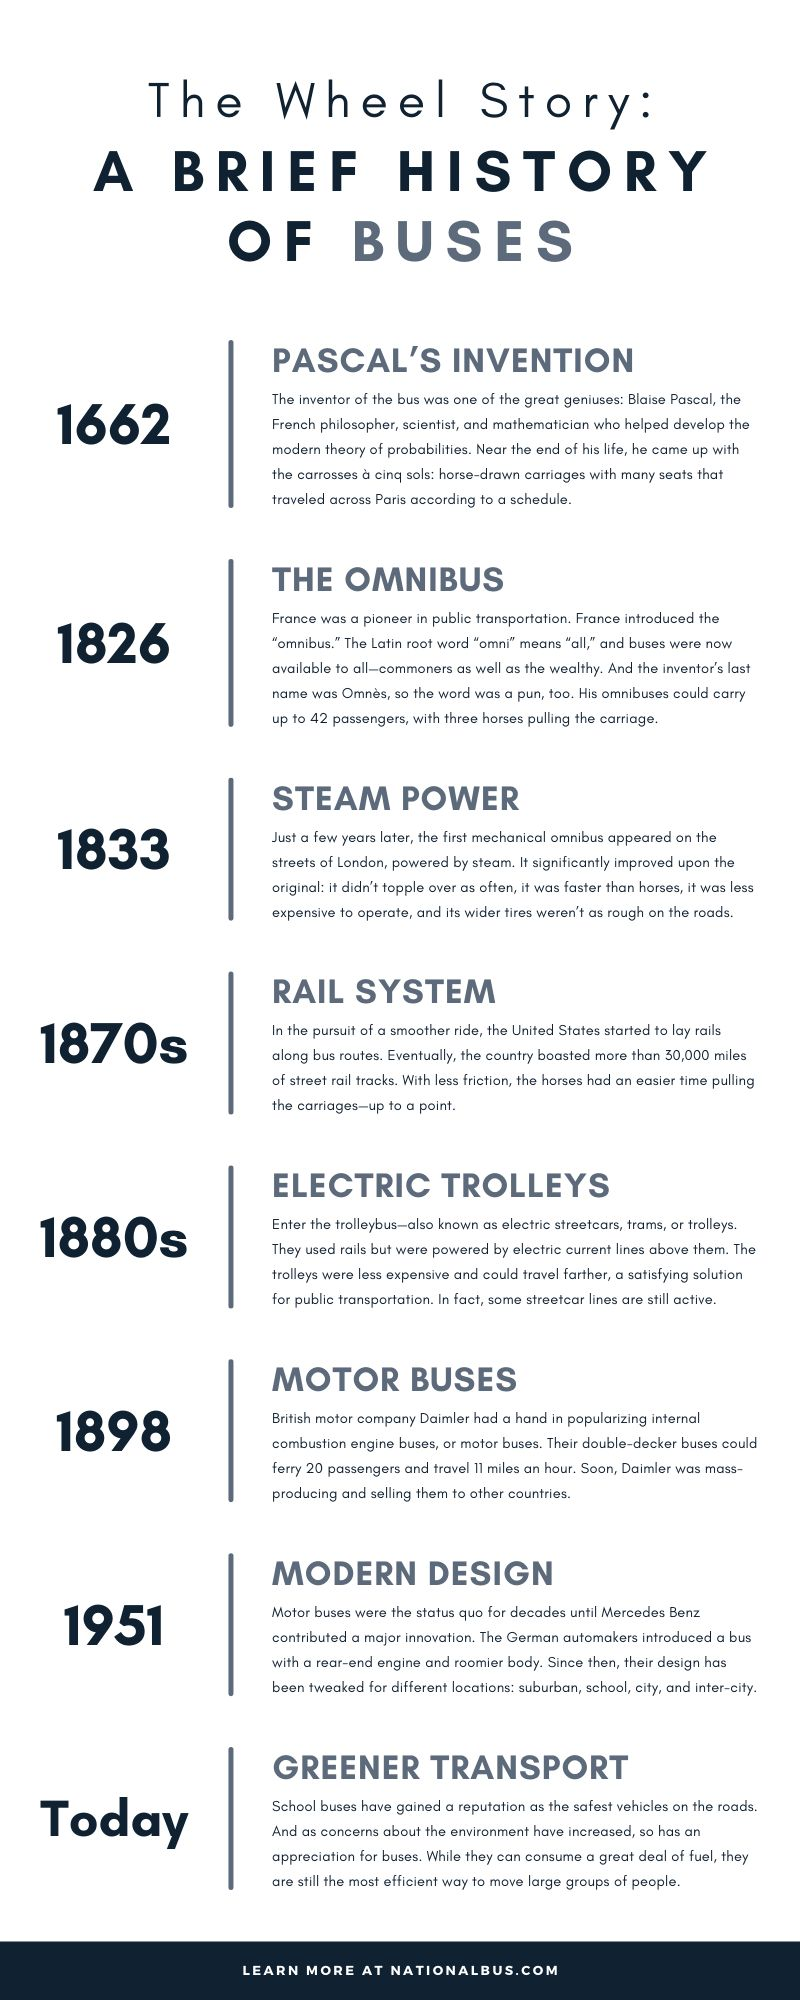 The Wheel Story: A Brief History of Buses